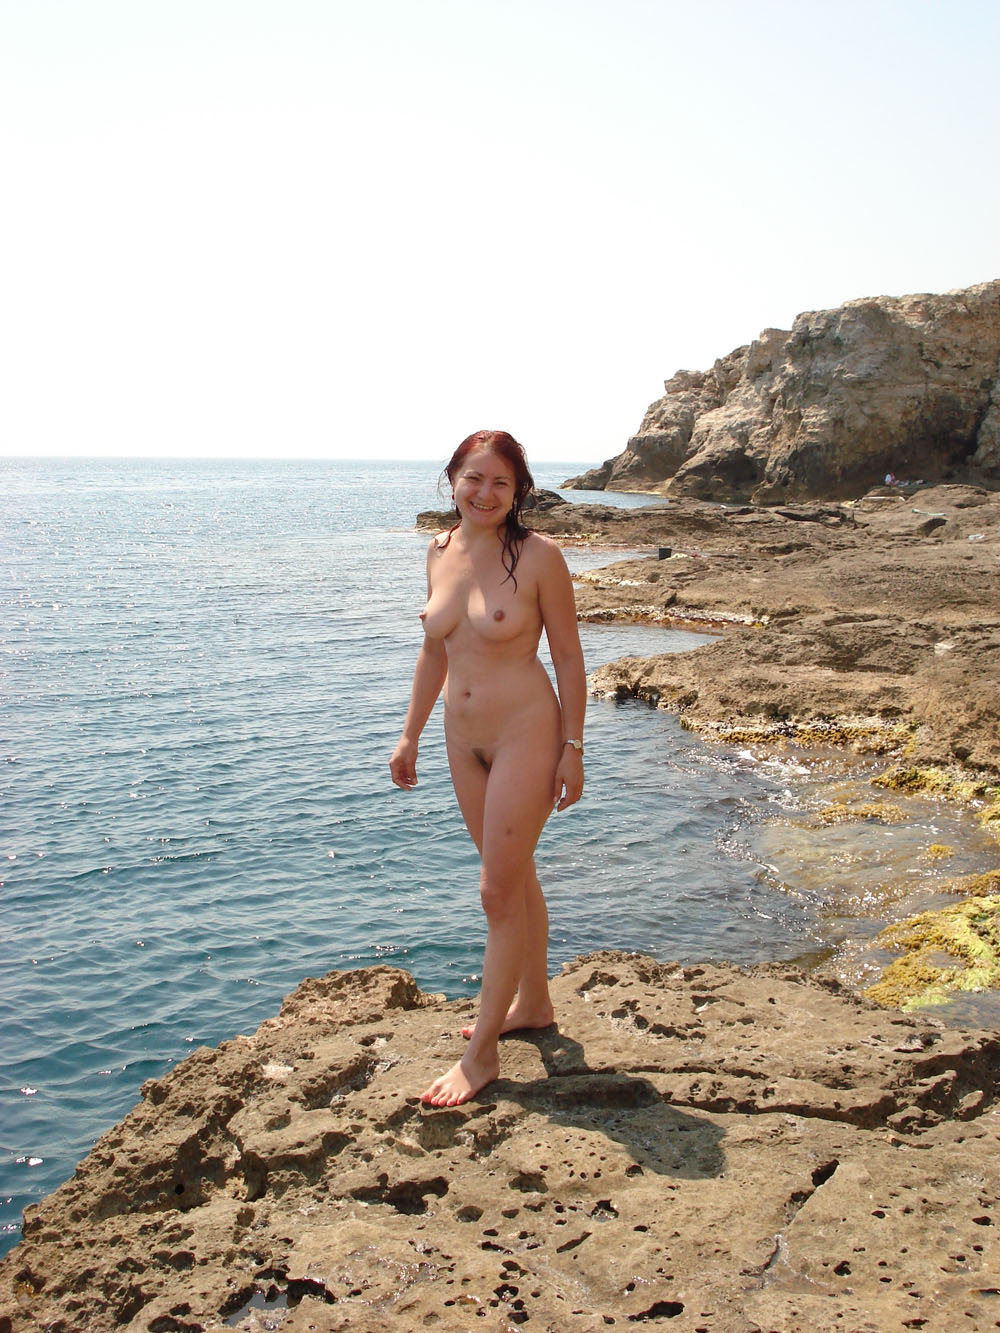 Naughty girl sexy photo shoot on a rocky beach fully nude with her hairy muff